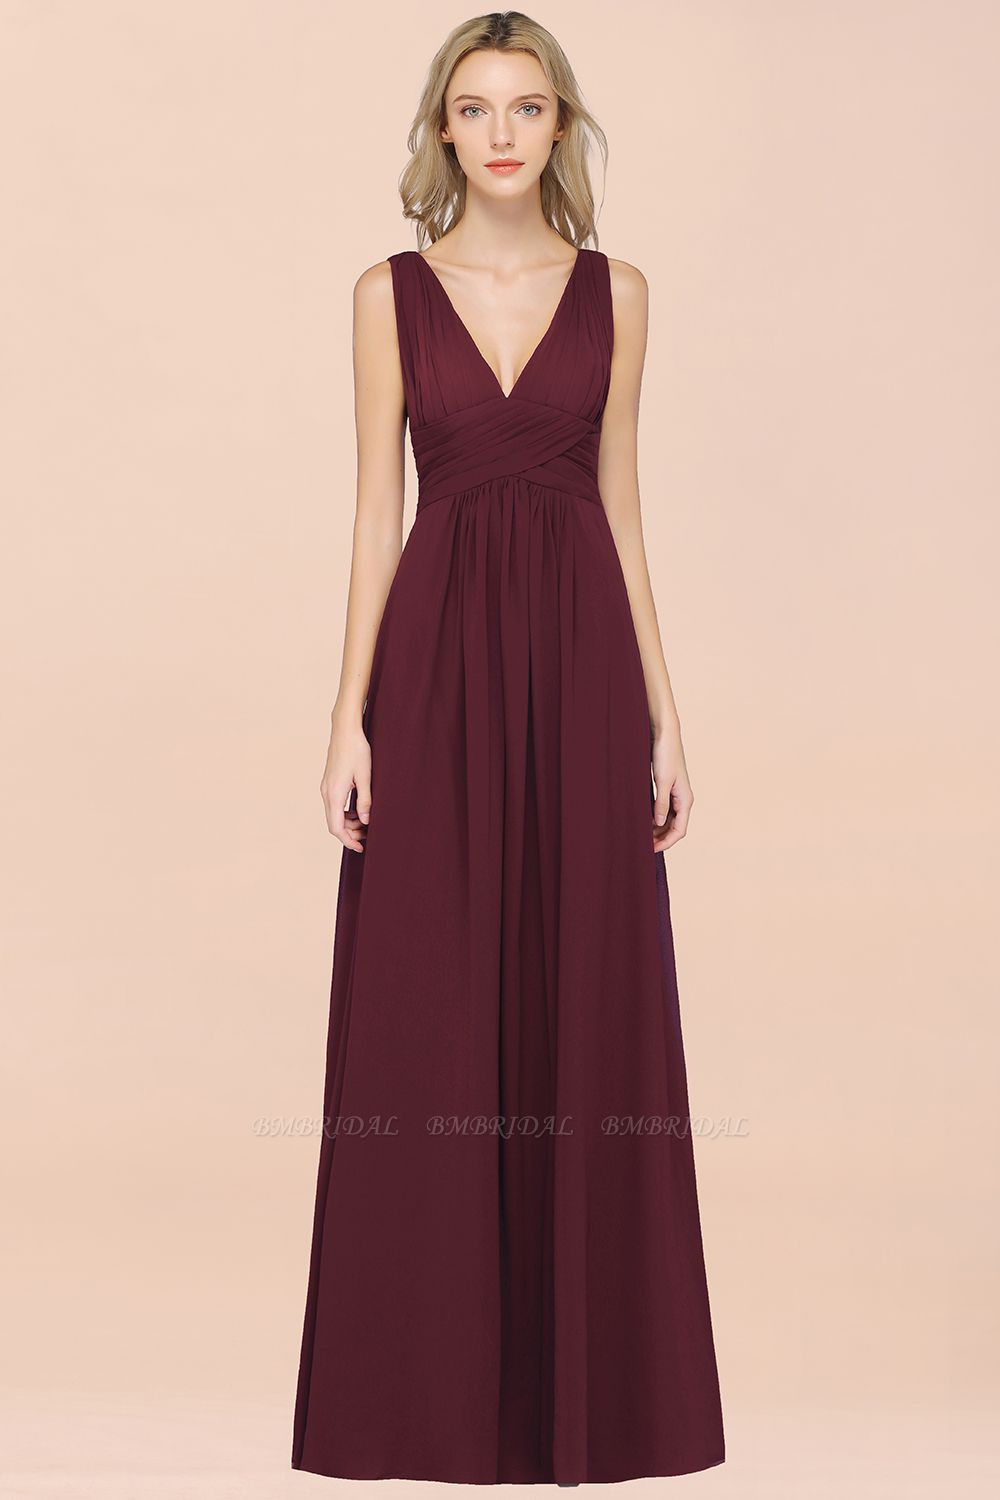 BMbridal Elegant V-Neck Burgundy Chiffon Affordable Bridesmaid Dress with Ruffle